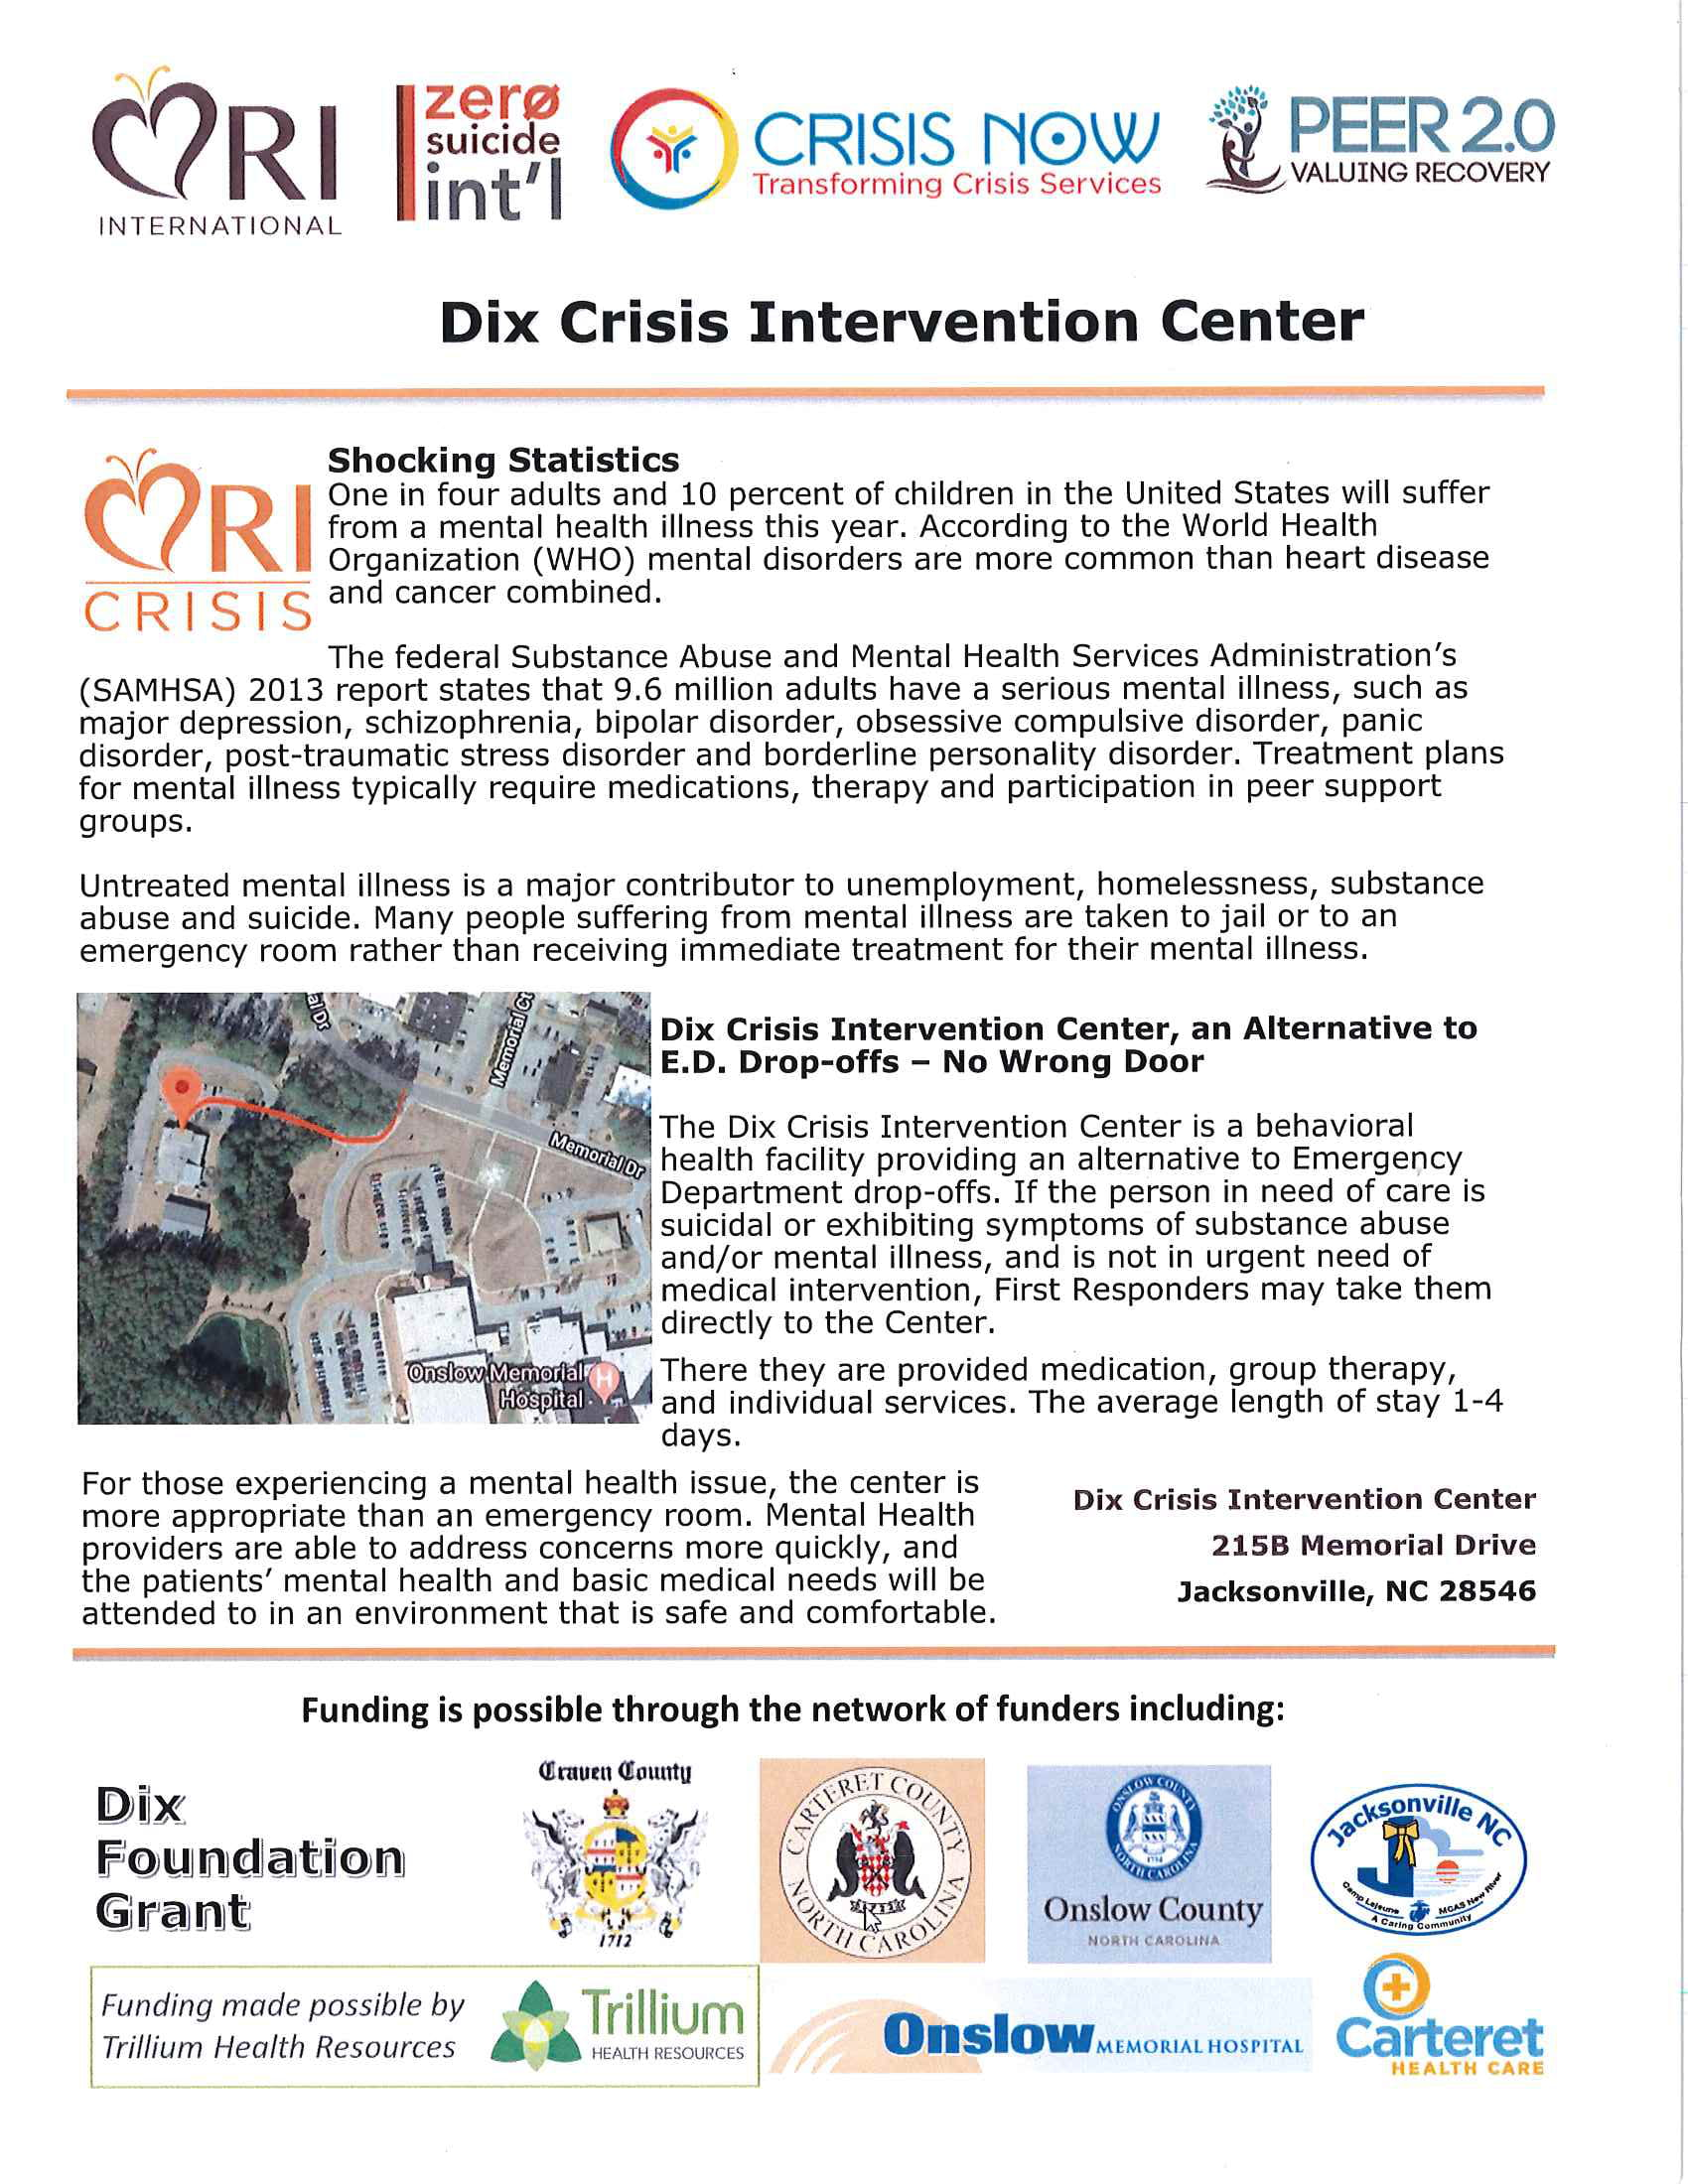 Dix Crisis Center Intervention Handout